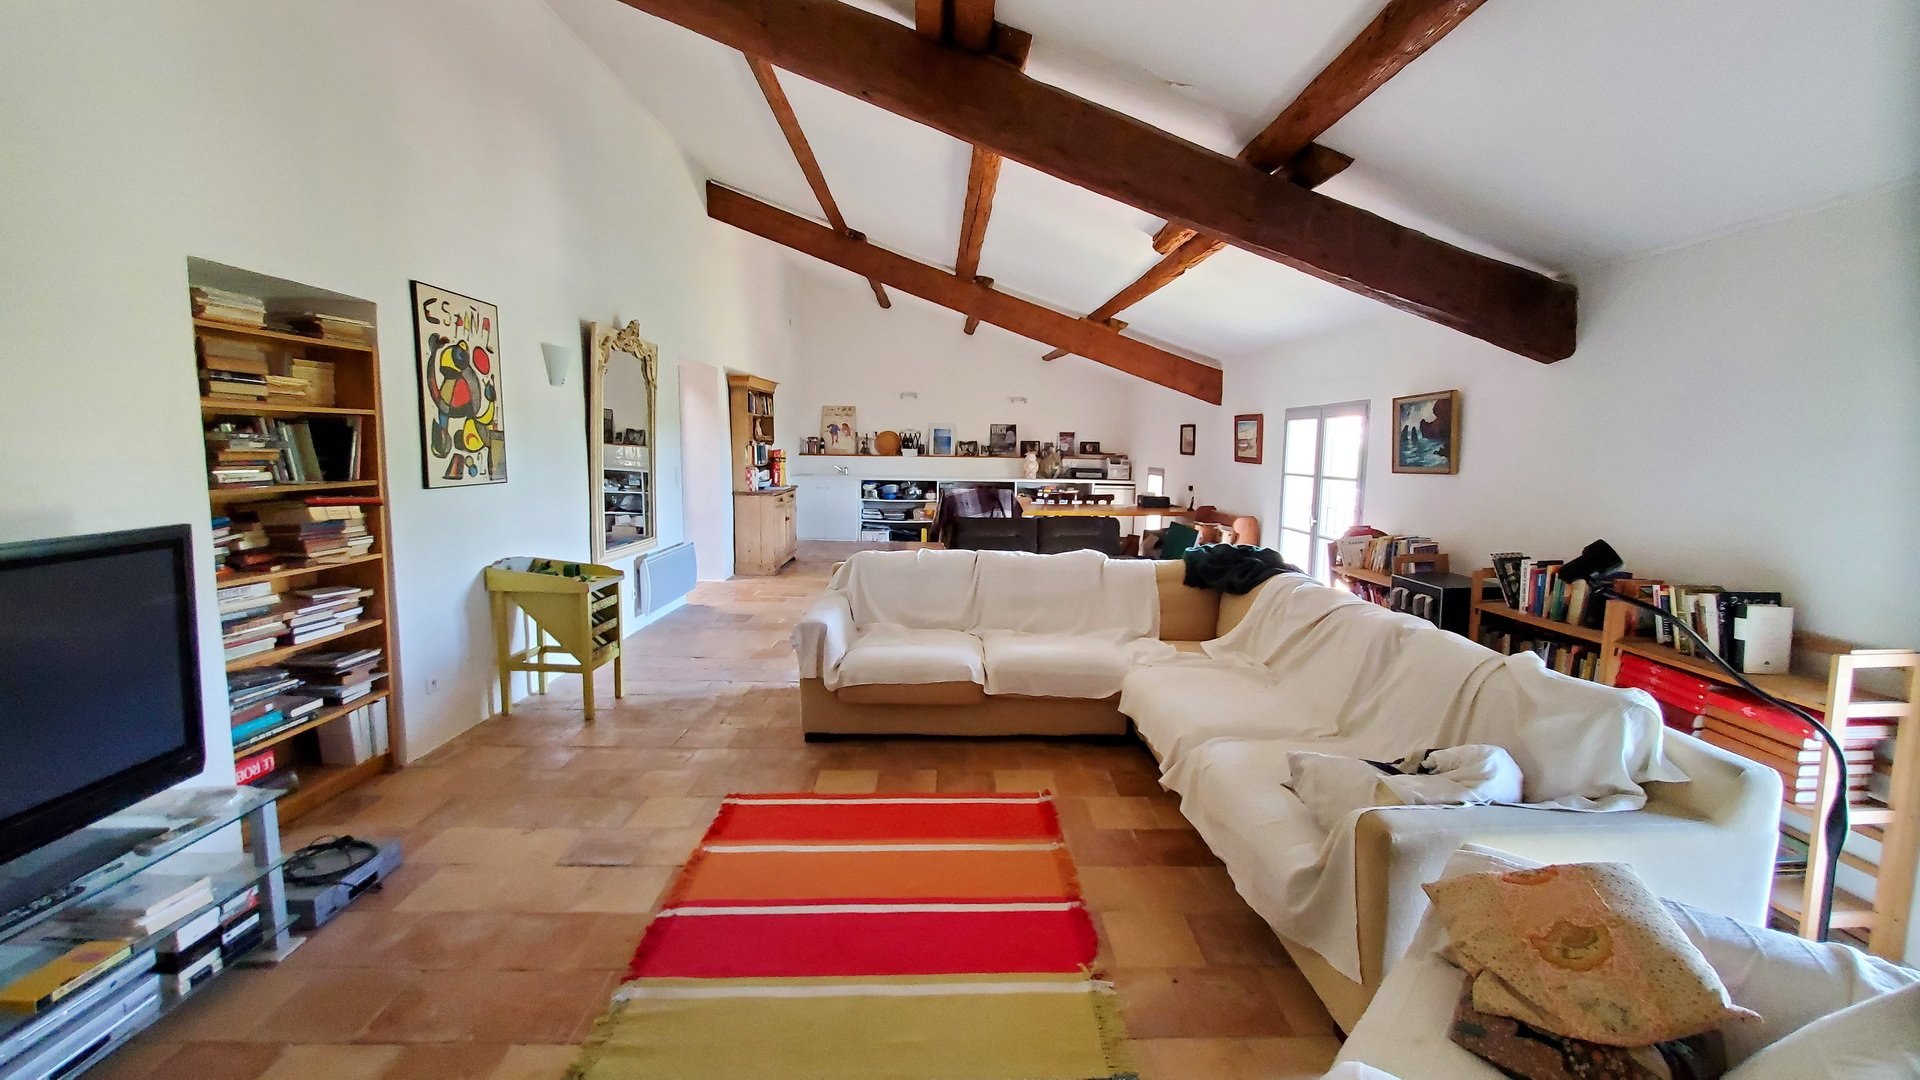 Beautiful wine maker's home with garages and garden